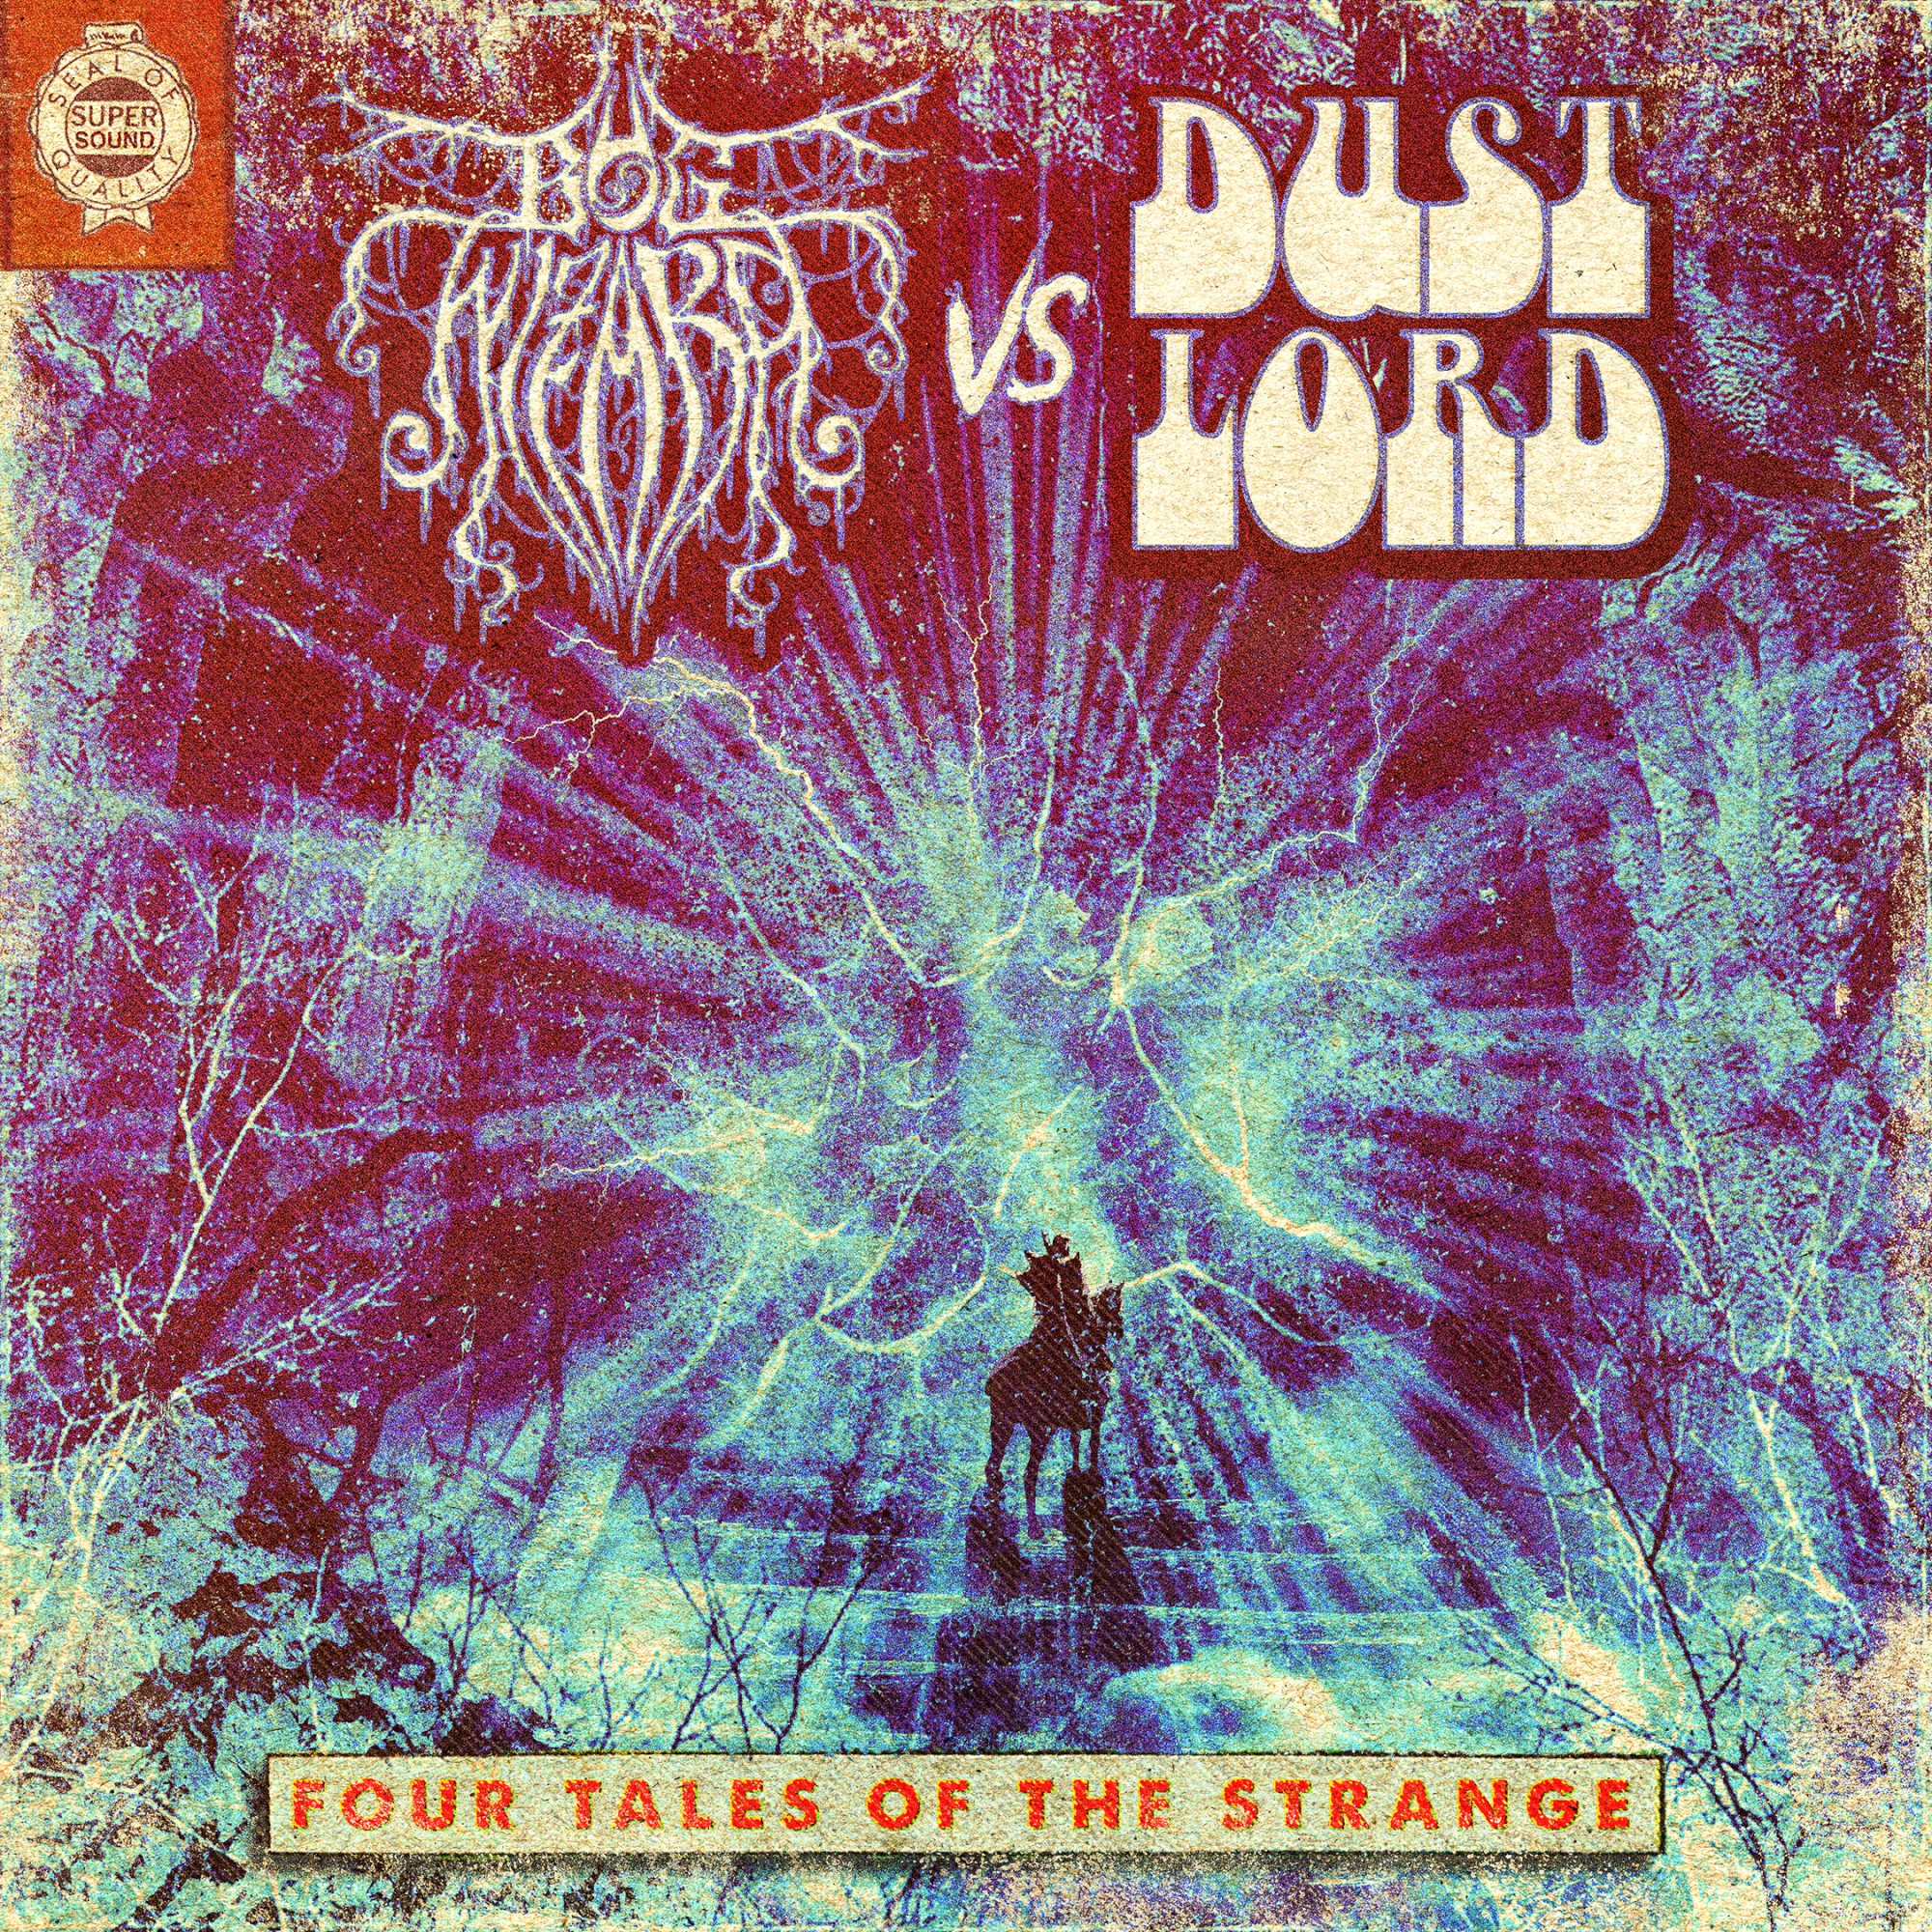 bog wizard dust lord four tales of the strange-2000